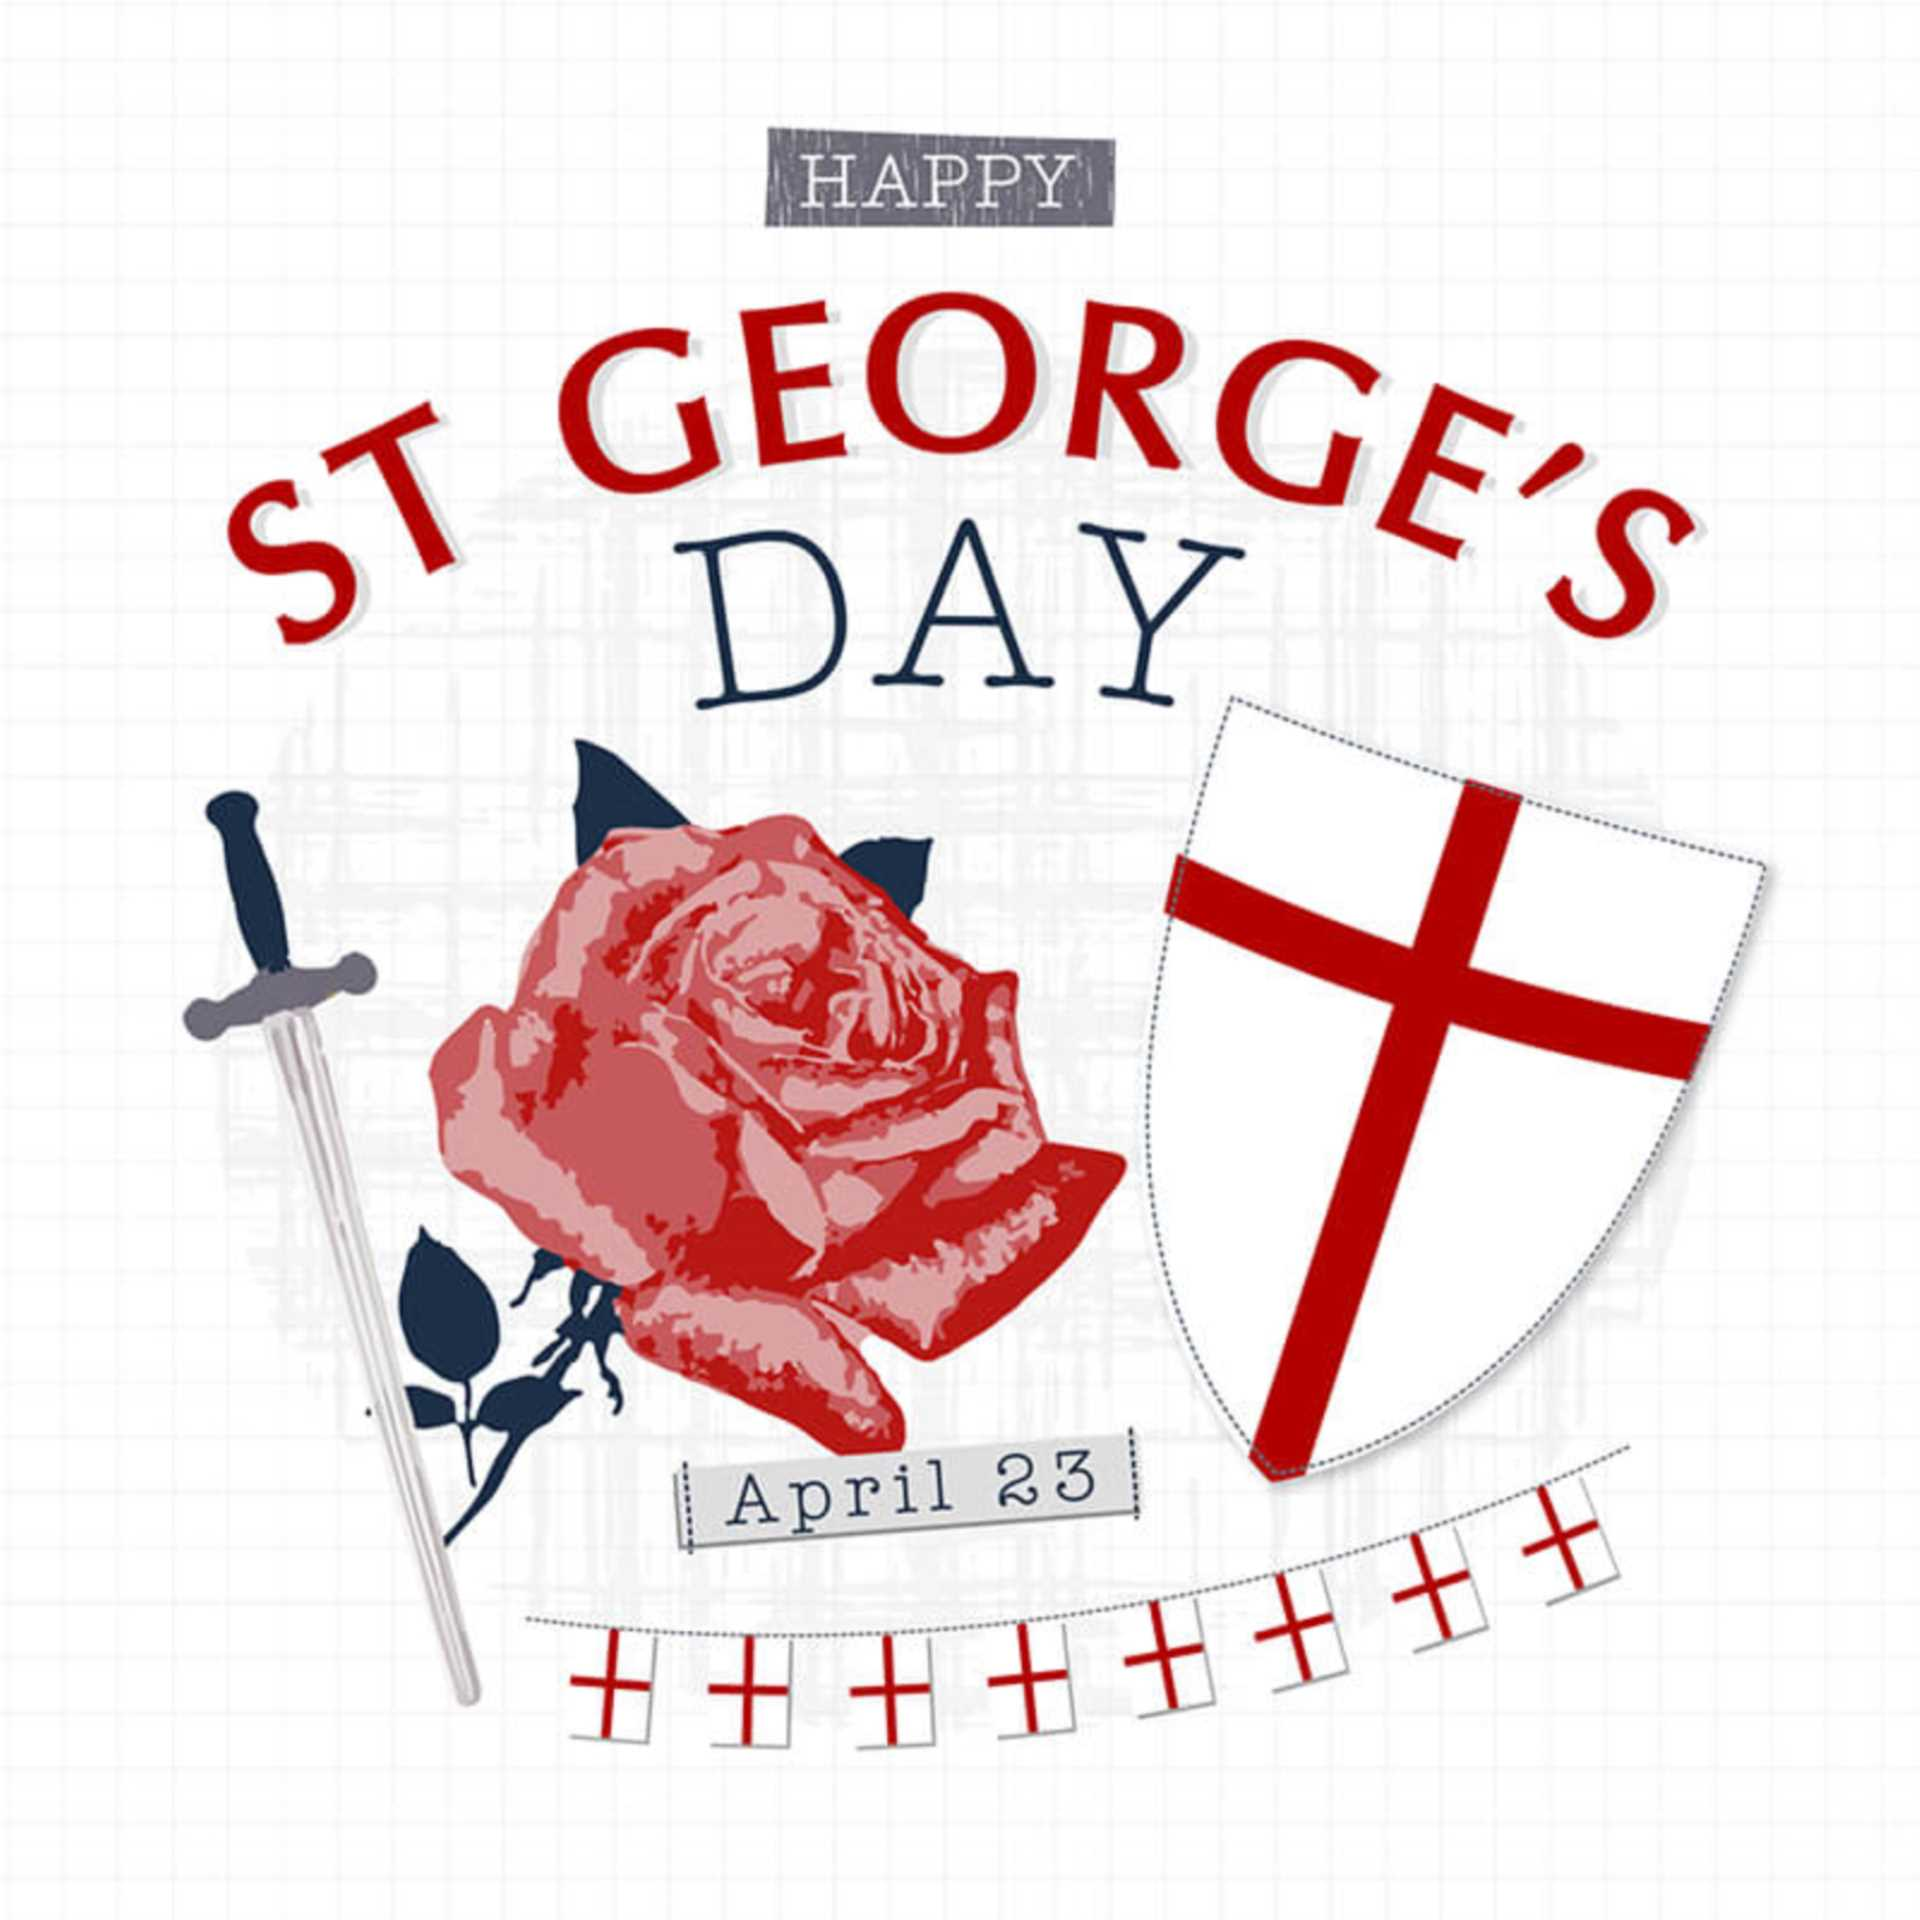 Happy St.Georges Day!